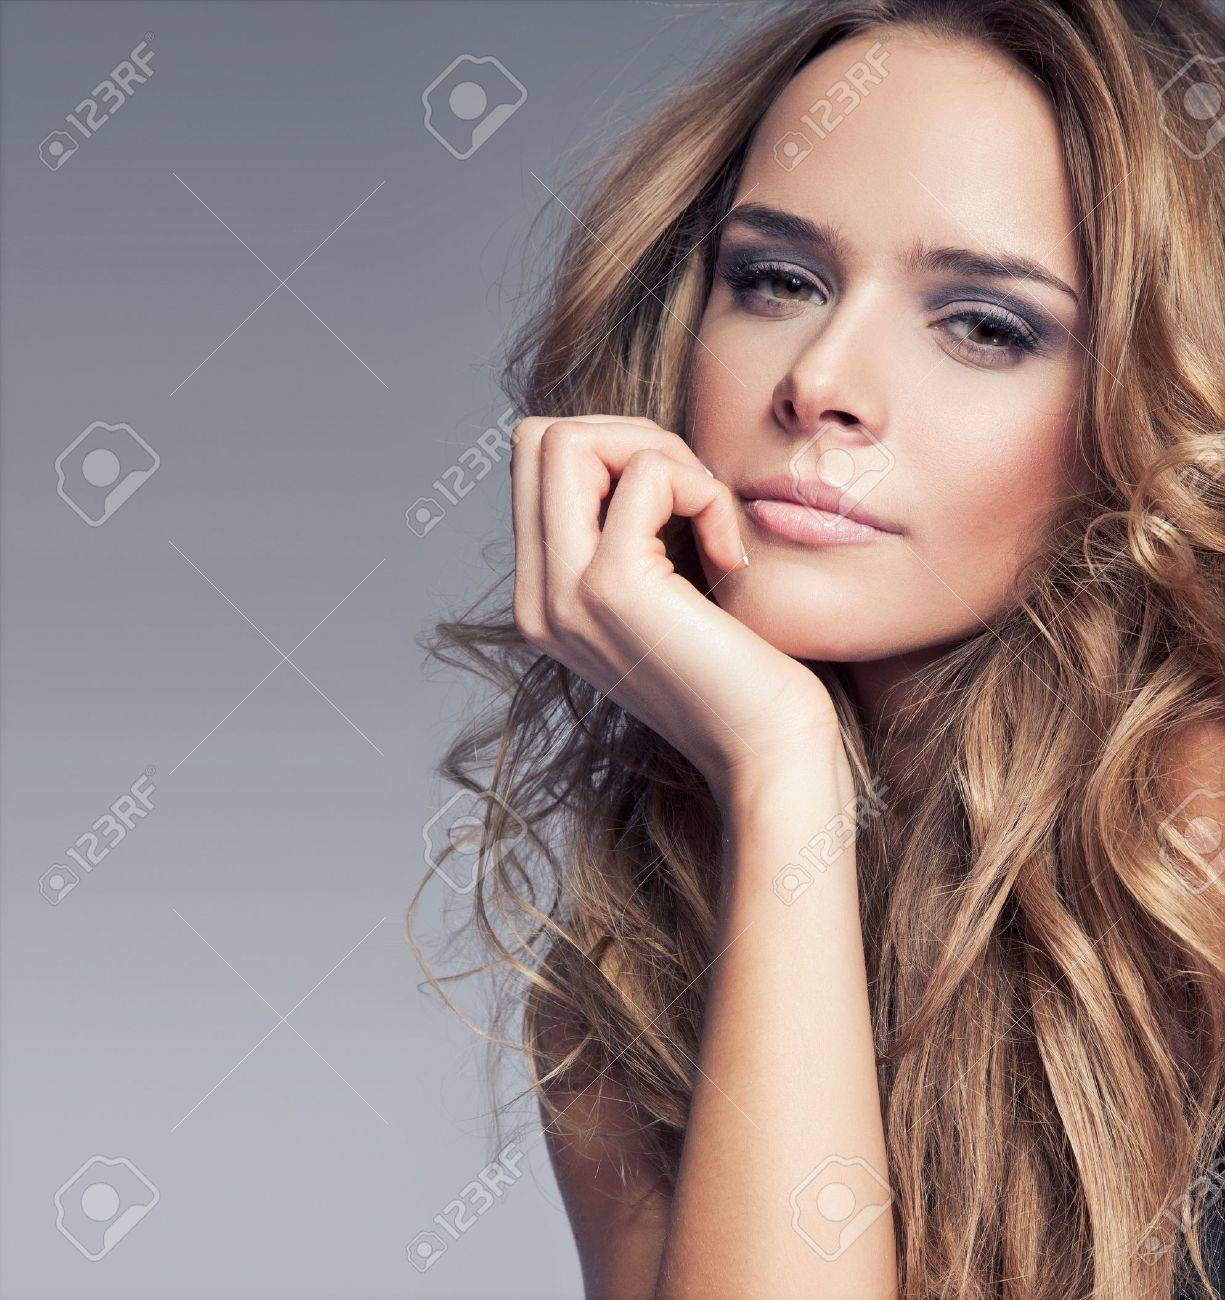 Portrait of beautiful delicate woman on gray background Stock Photo - 12406808